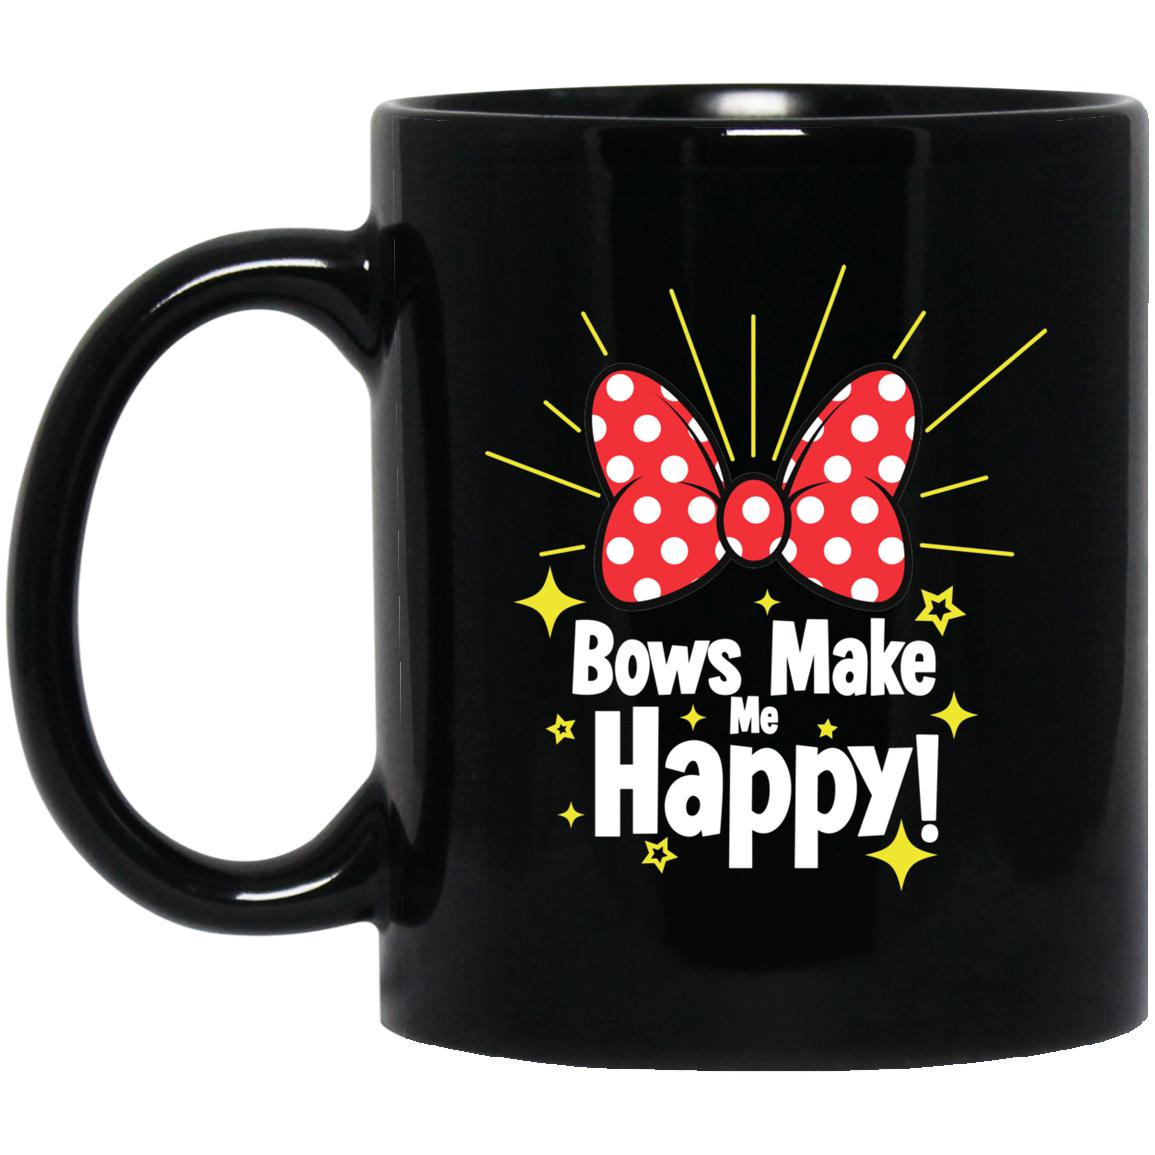 Bows Make Me Happy - Black Mug - 11oz or 15oz